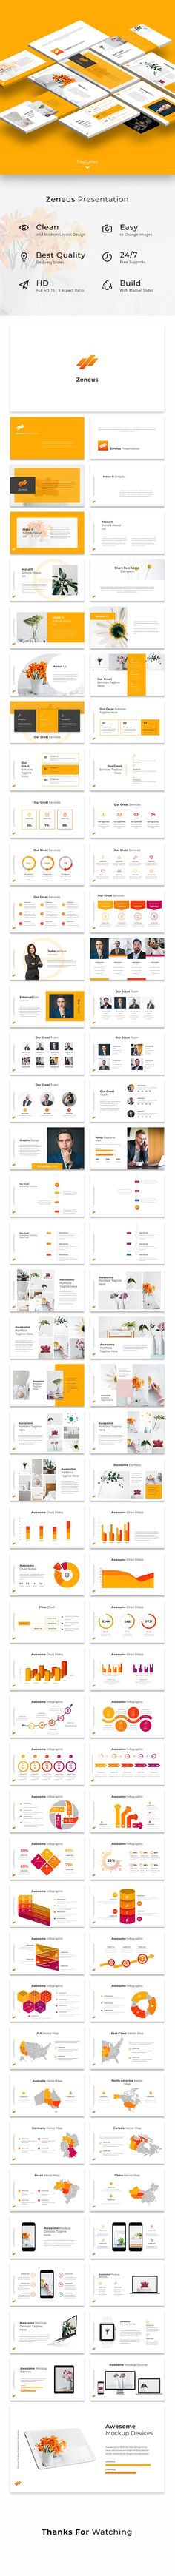 Zeneus - Powerpoint Template